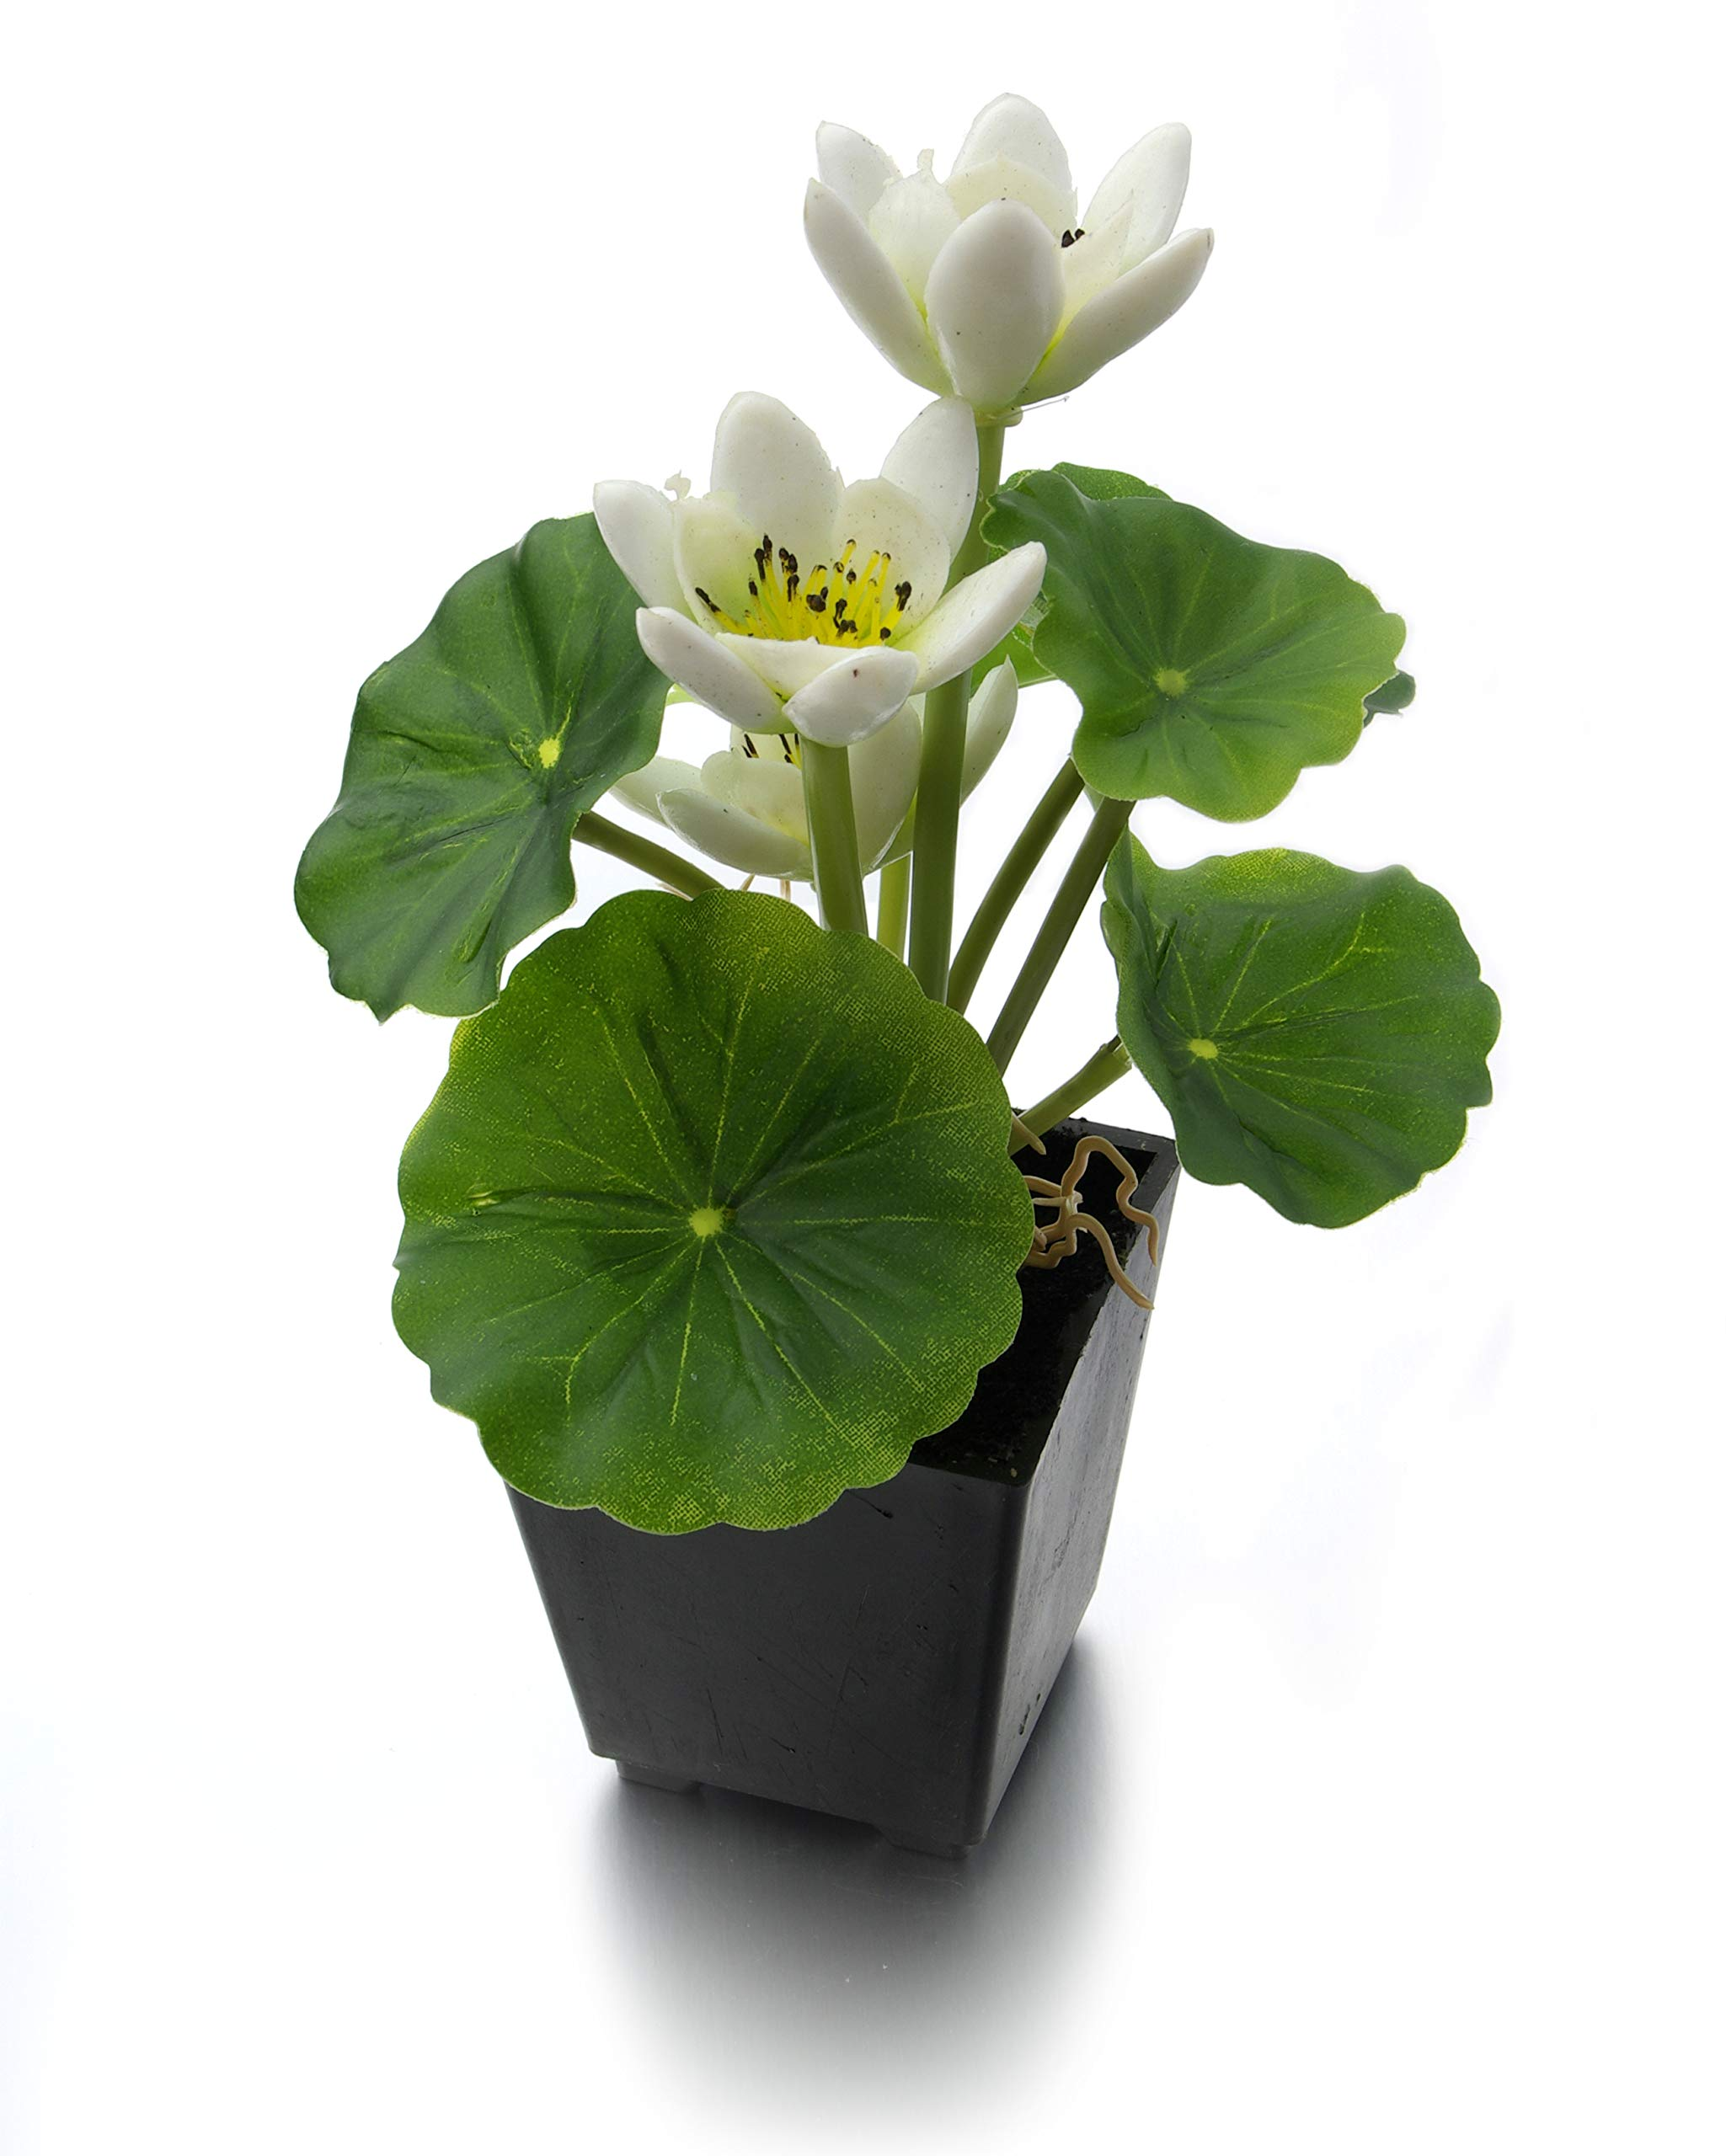 MaxFlowery-Set-of-2-Artificial-Real-Touch-Lotus-Plant-with-White-Blooms-in-Matt-Black-Pot-Duo-Fake-Plants-Greenery-Flowers-with-Square-Planter